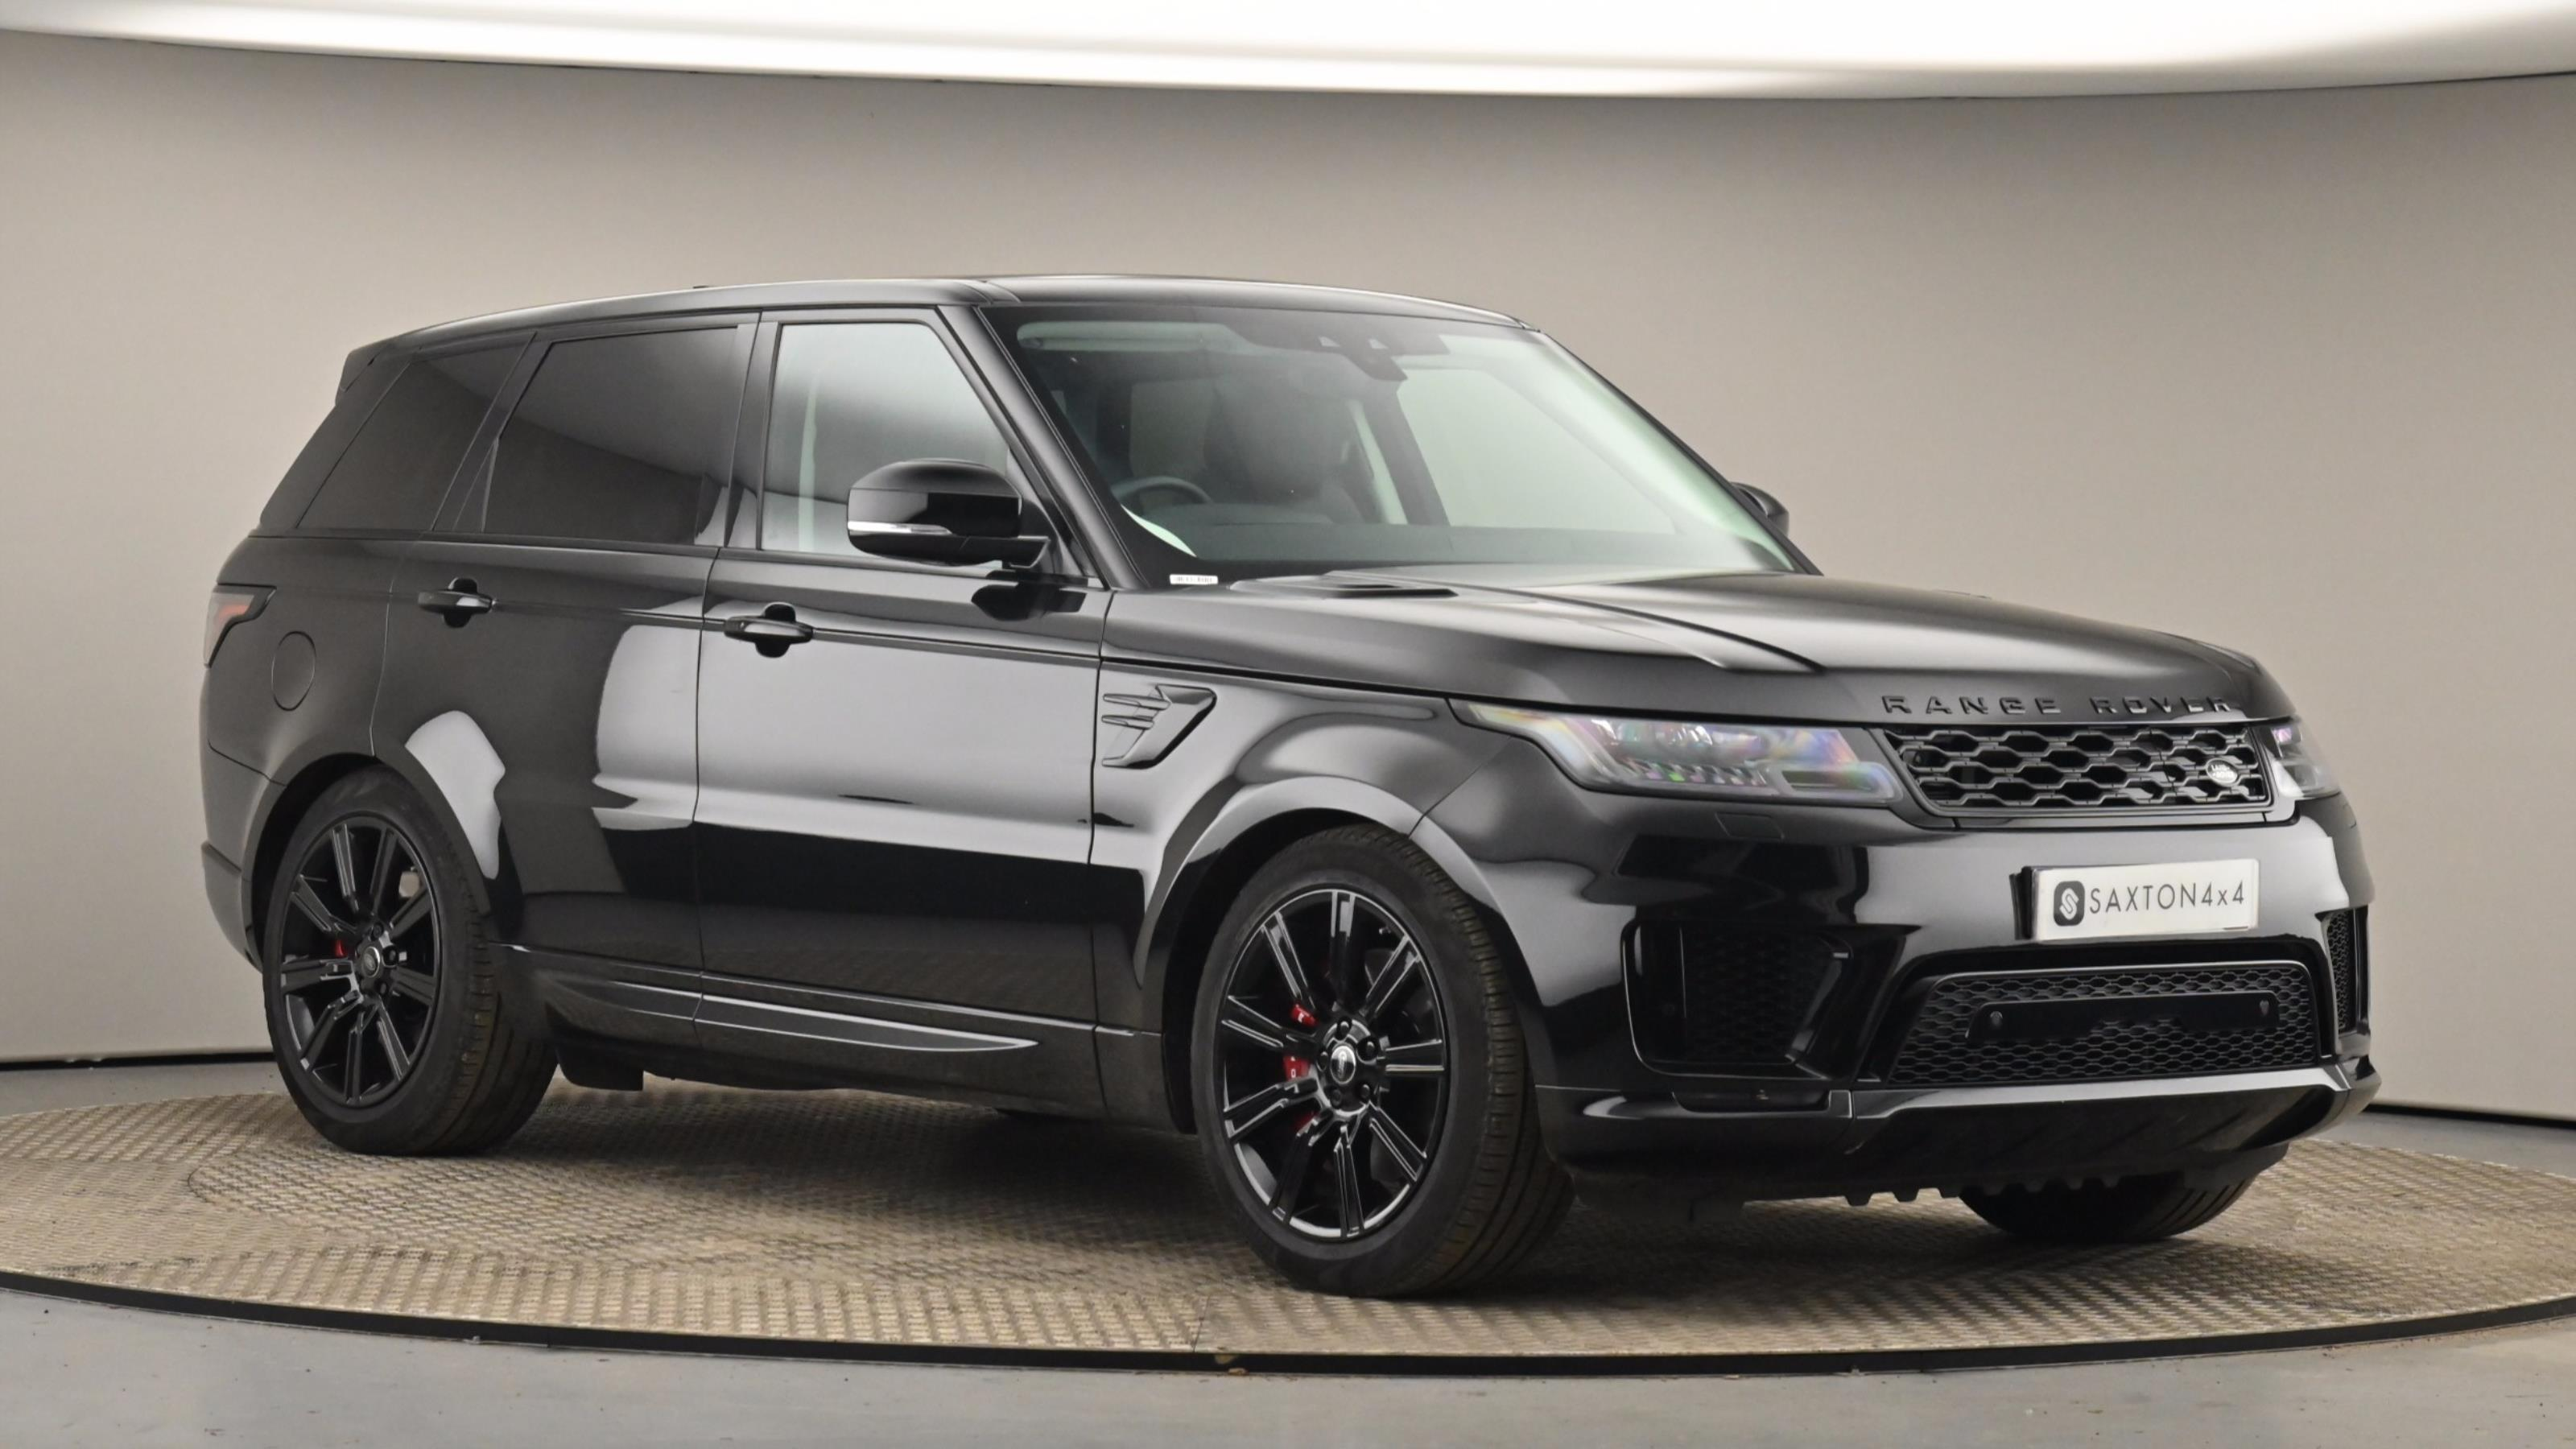 Used 2018 Land Rover RANGE ROVER SPORT 2.0 P400e HSE Dynamic 5dr Auto BLACK at Saxton4x4